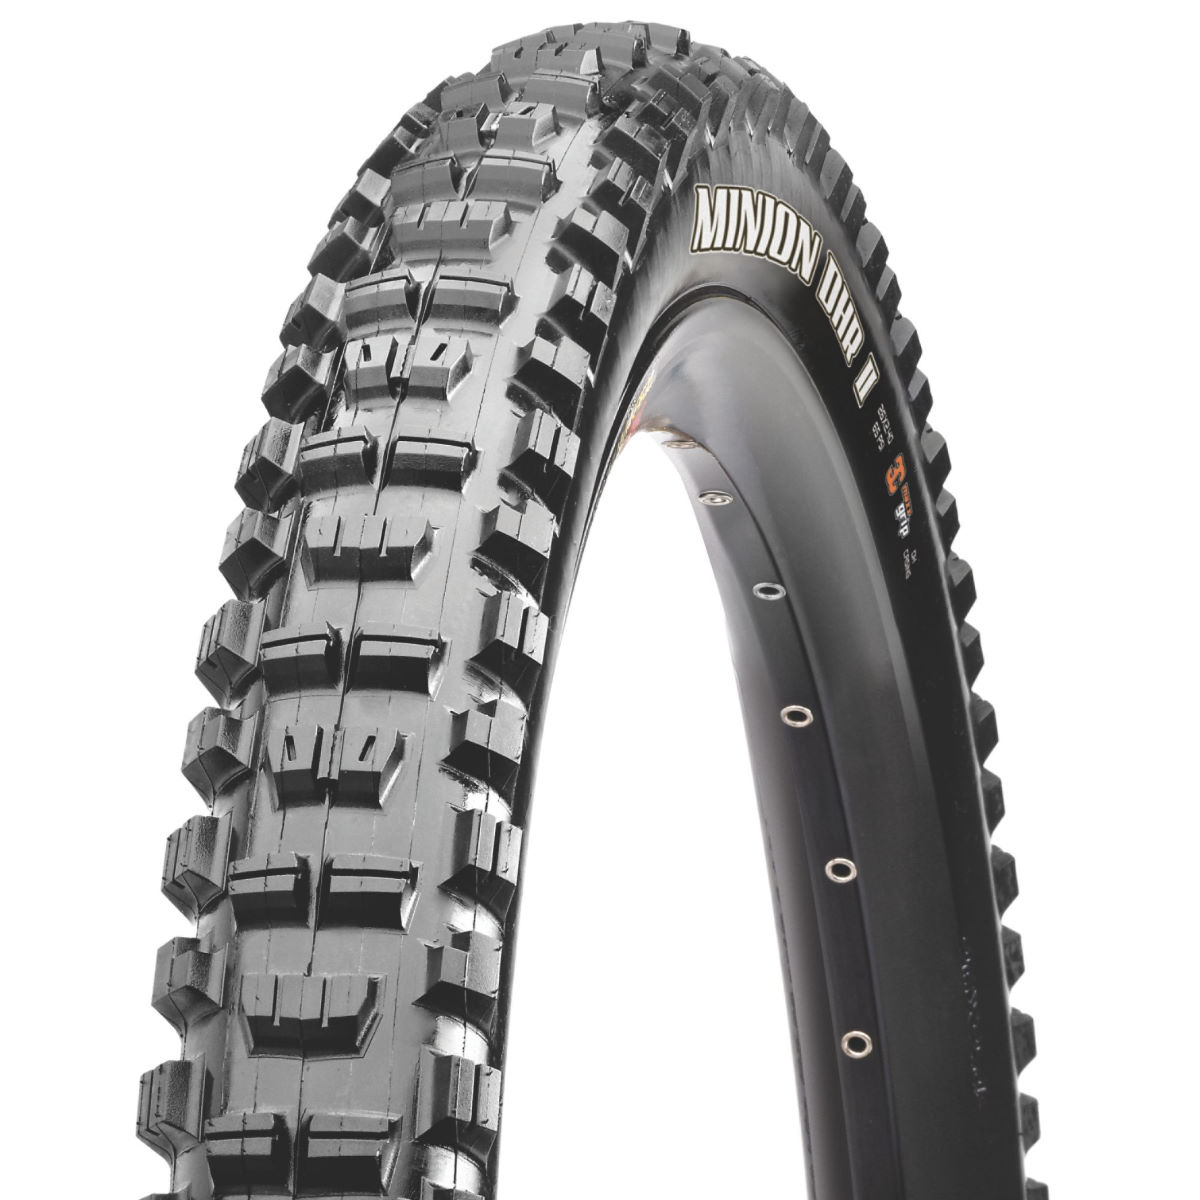 Maxxis Maxxis Minion DHR II Tyre - Dual Ply   Tyres